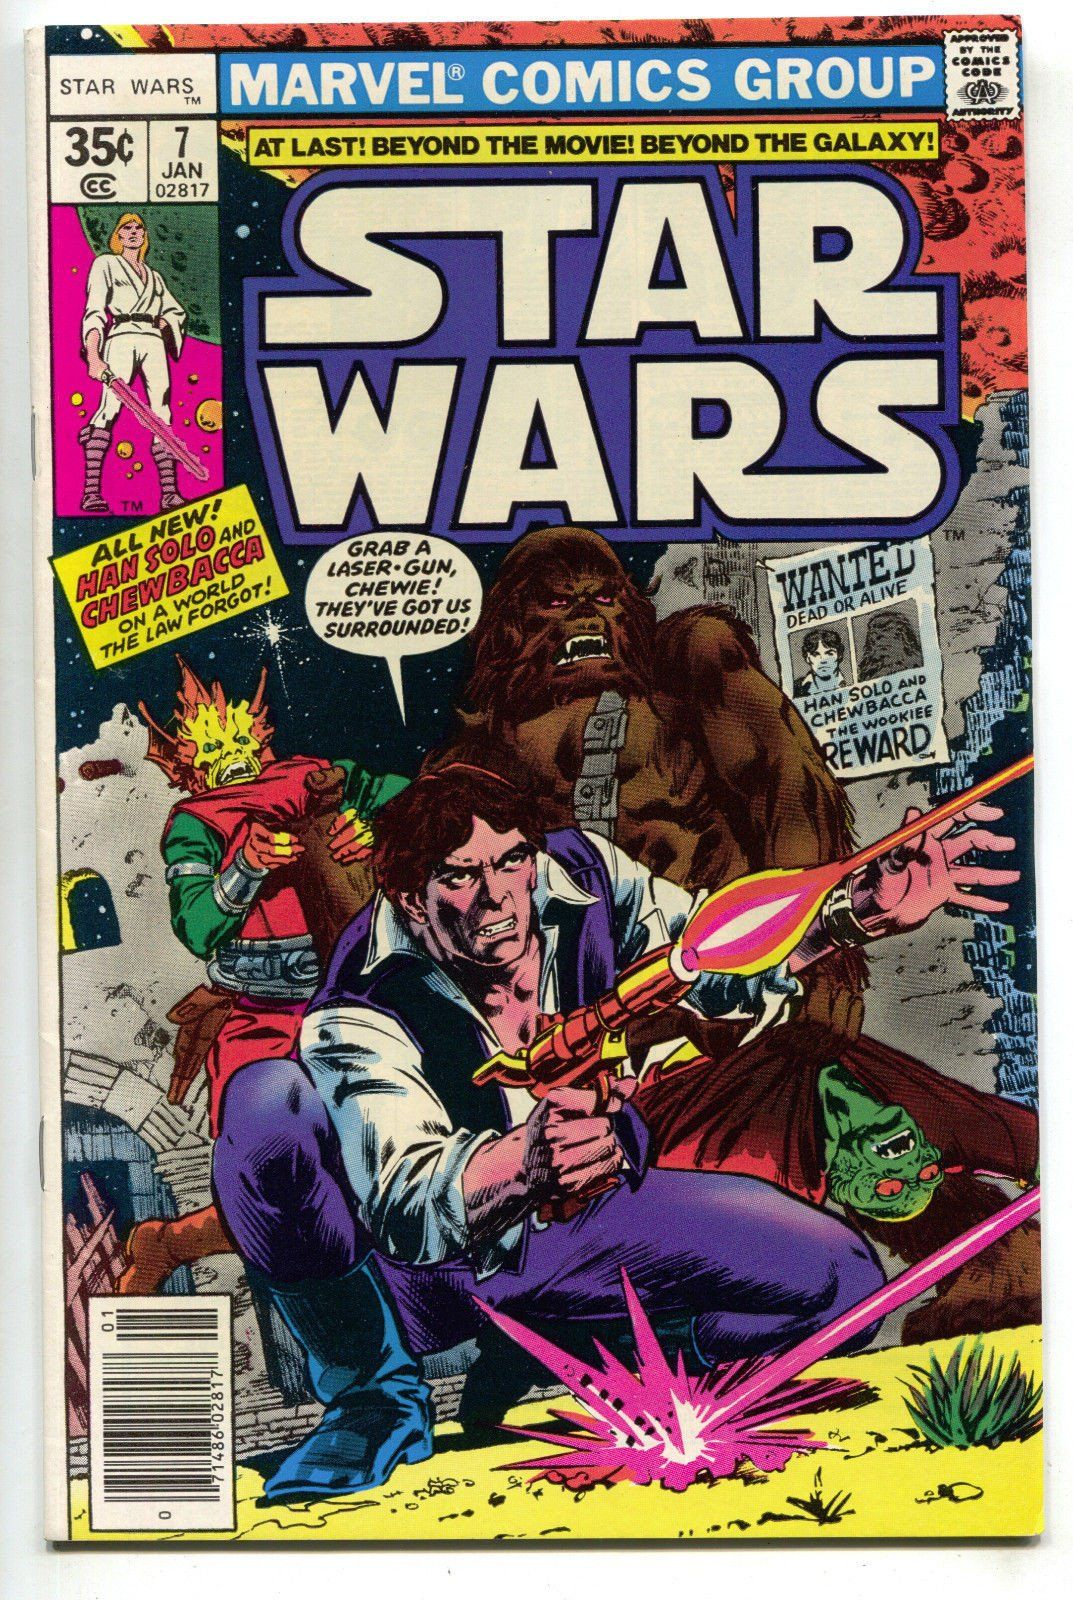 VARIANT EDITION STAR WARS #58 MARVEL COMICS NM